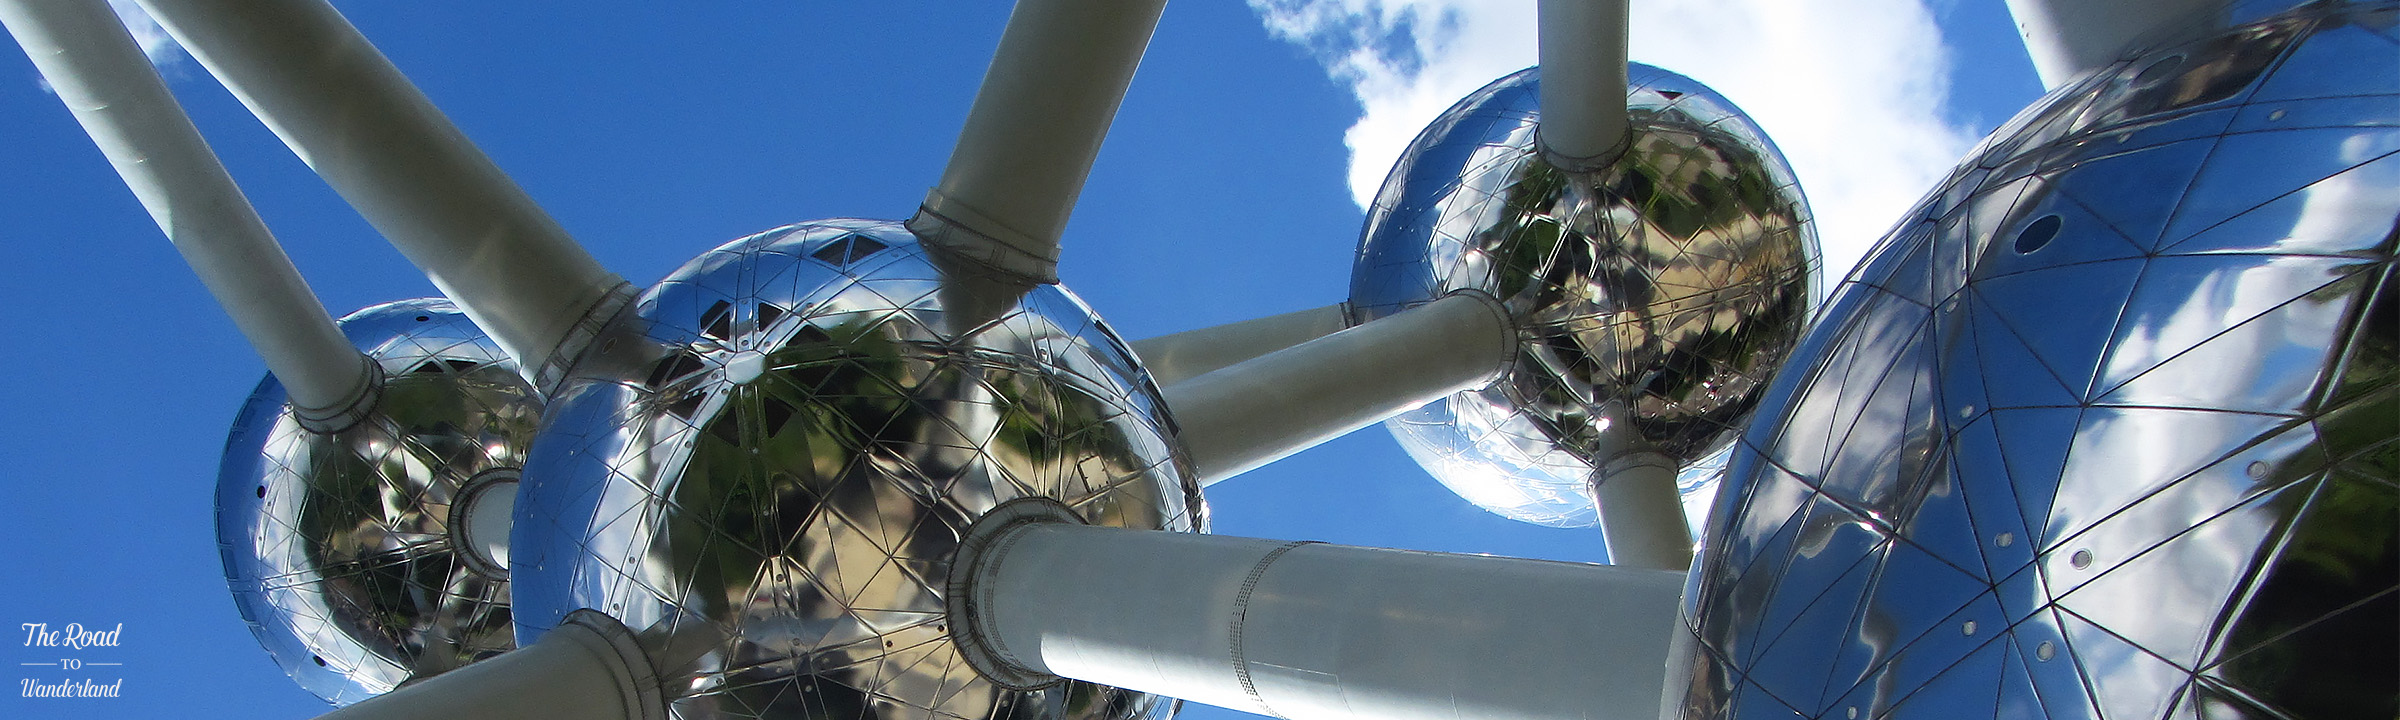 Angled shot of Atomium from beneath